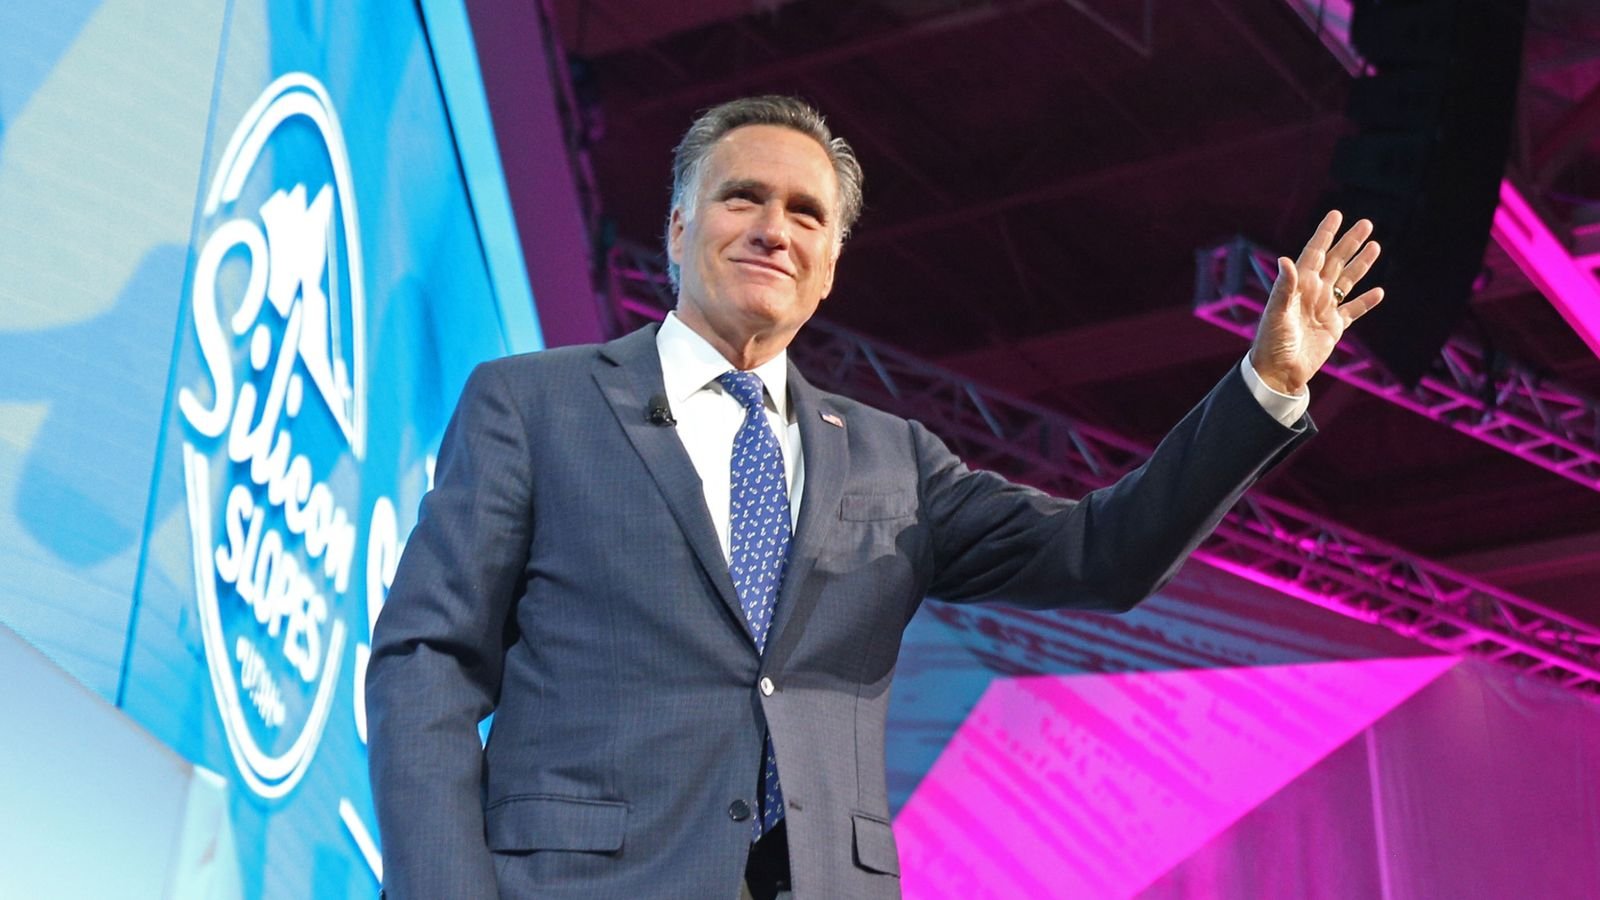 Mitt Romney launches US Senate campaign with 'dig at Donald Trump'